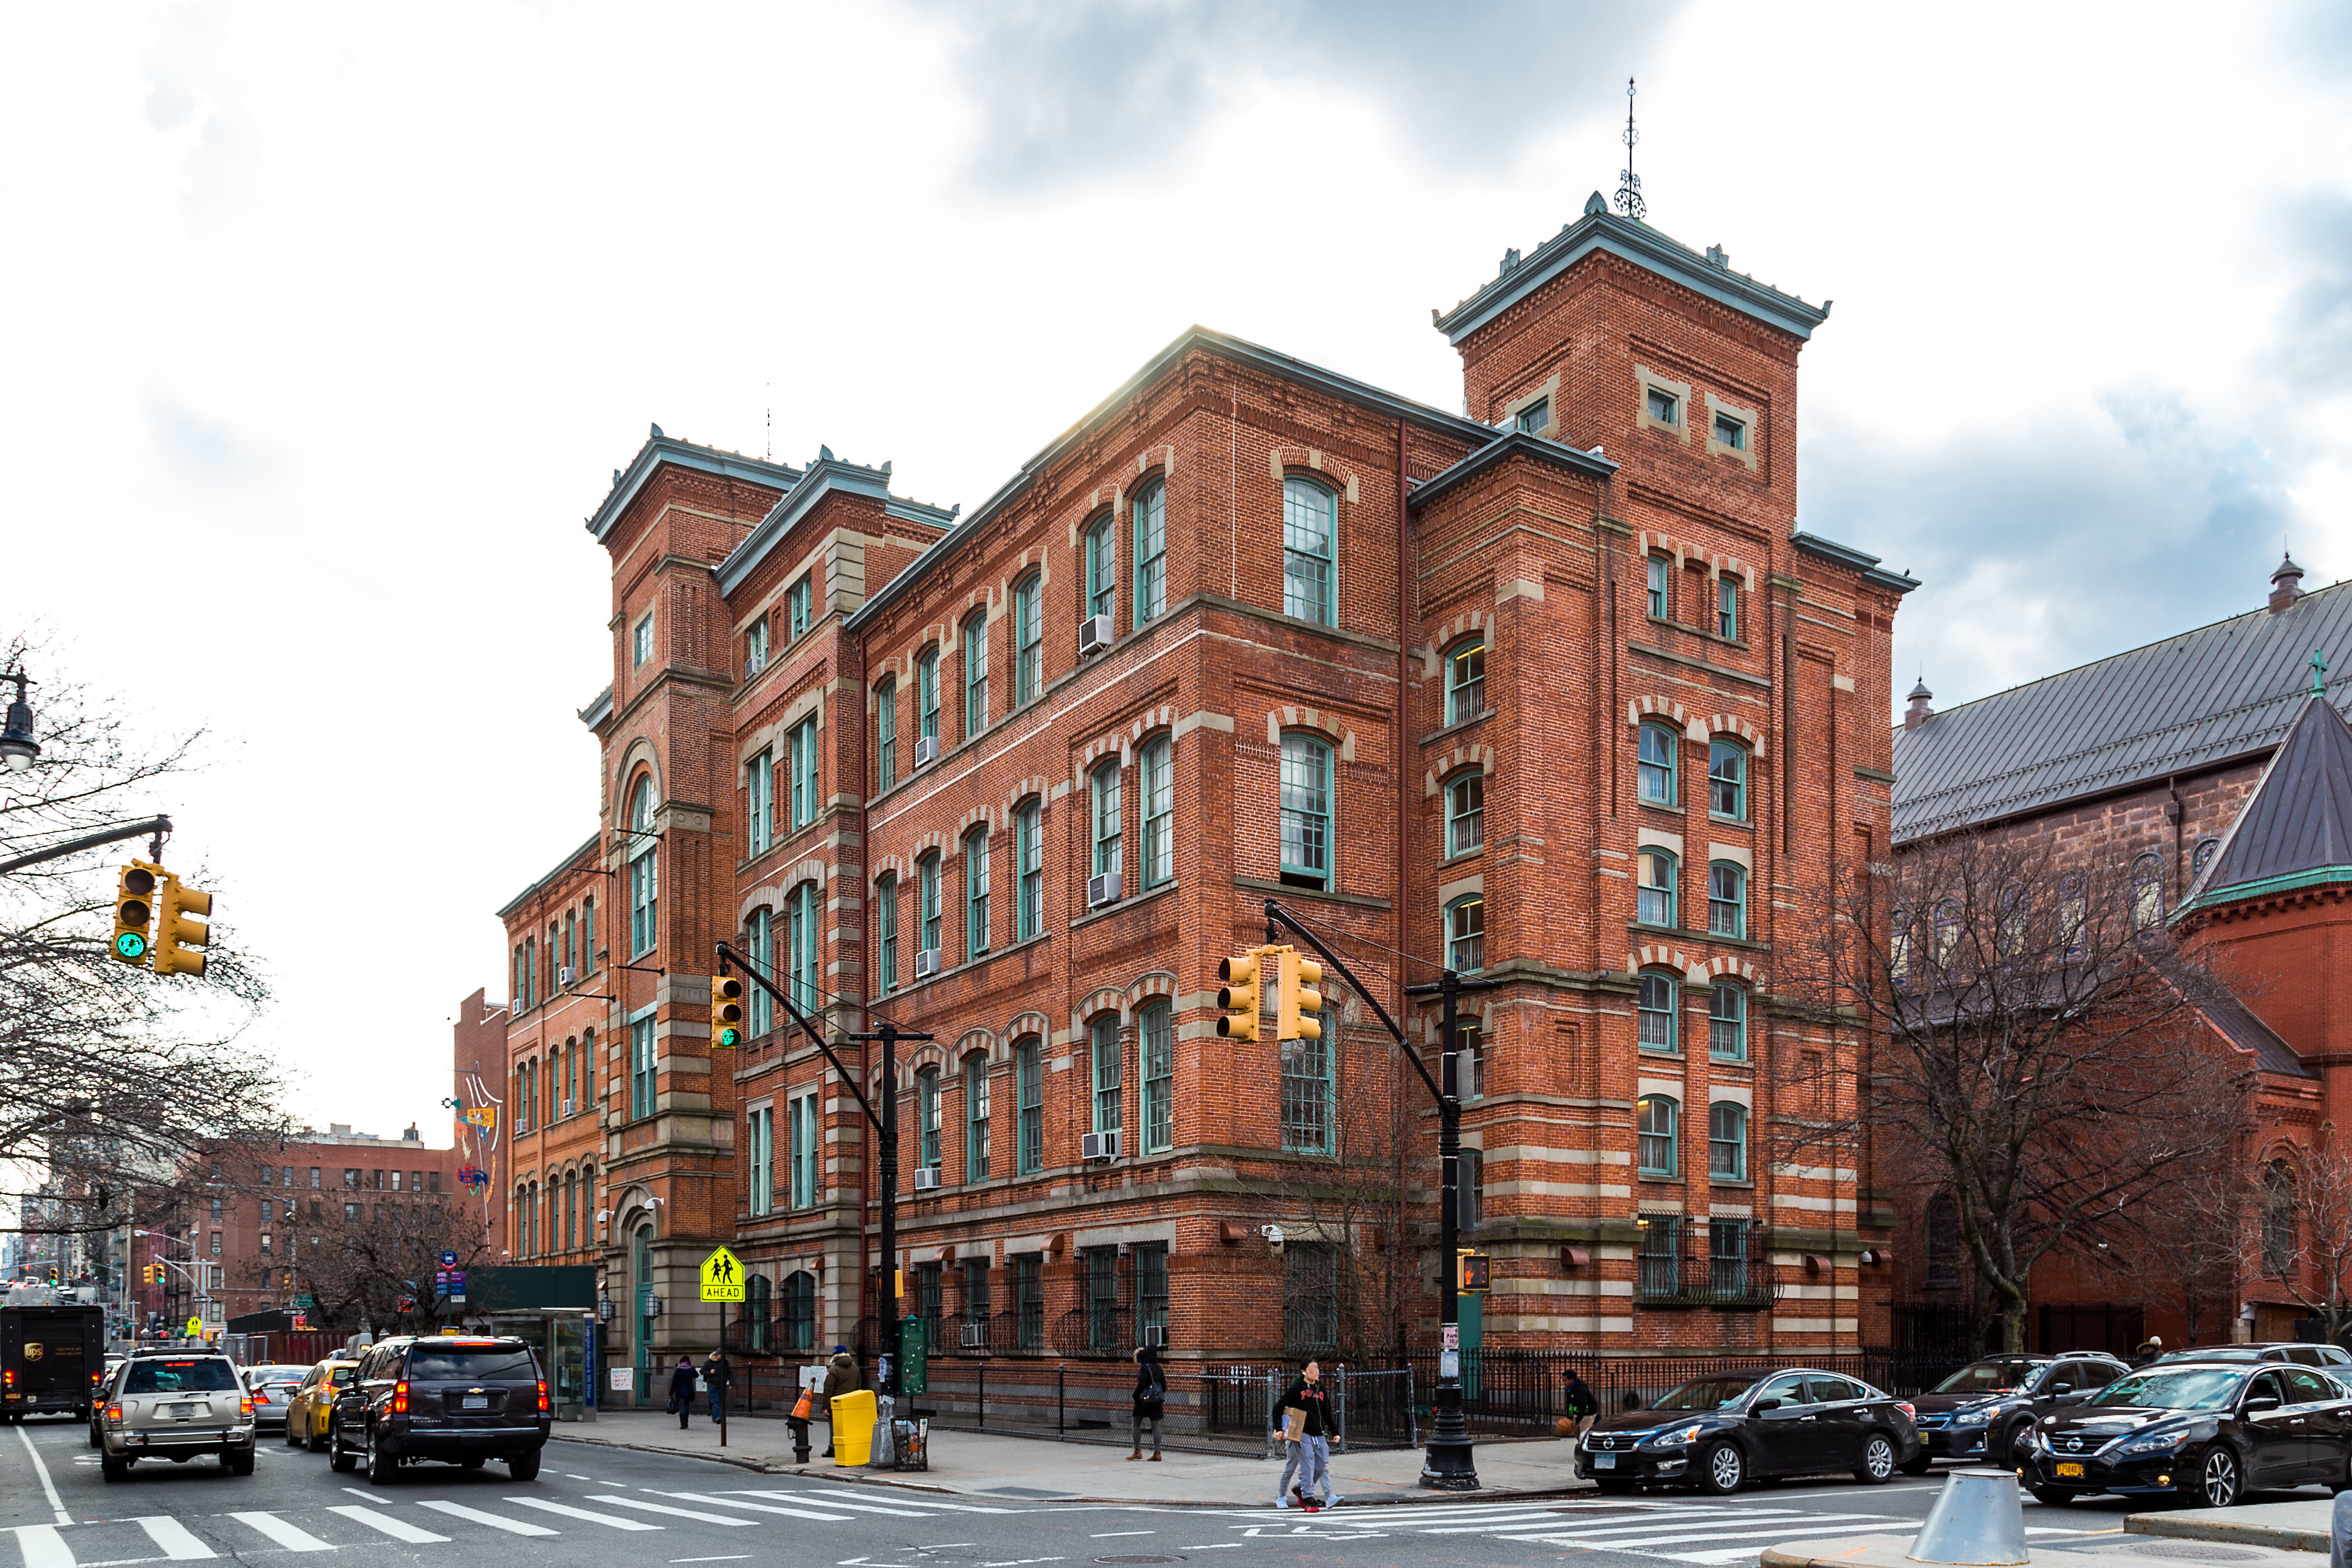 NYCSCA | Capital Plan Management Services in Connection with Building Condition Assessment Survey (BCAS) of New York City Schools